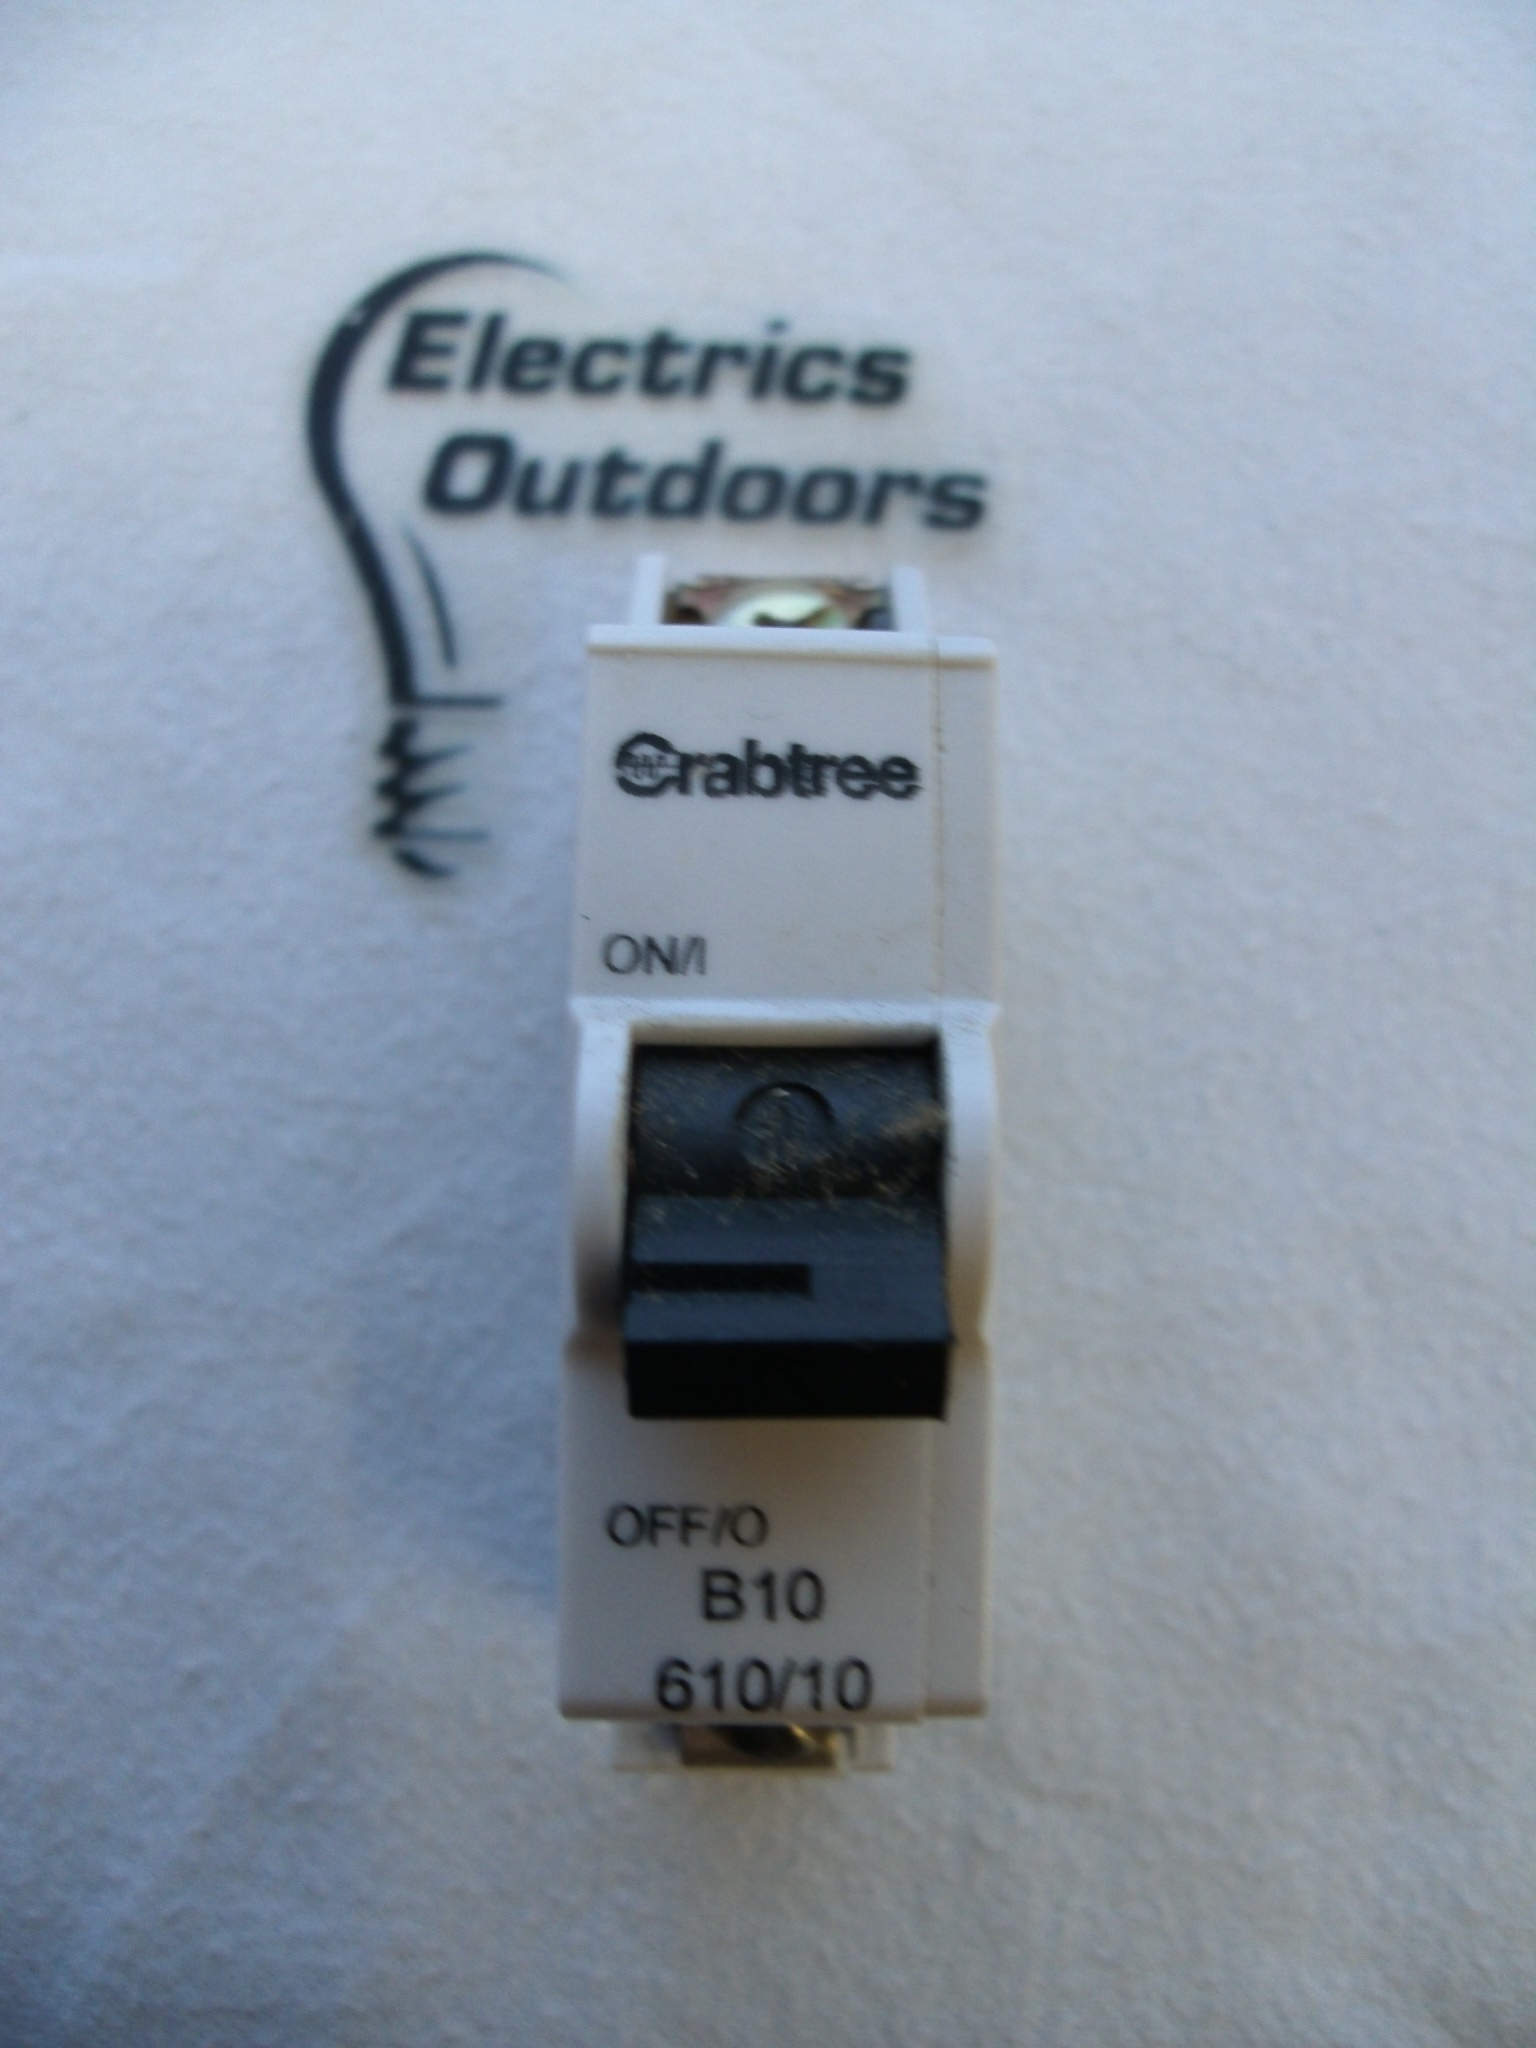 CRABTREE 10 AMP TYPE B 6 kA MCB CIRCUIT BREAKER 230V 610/10 BS EN 60898